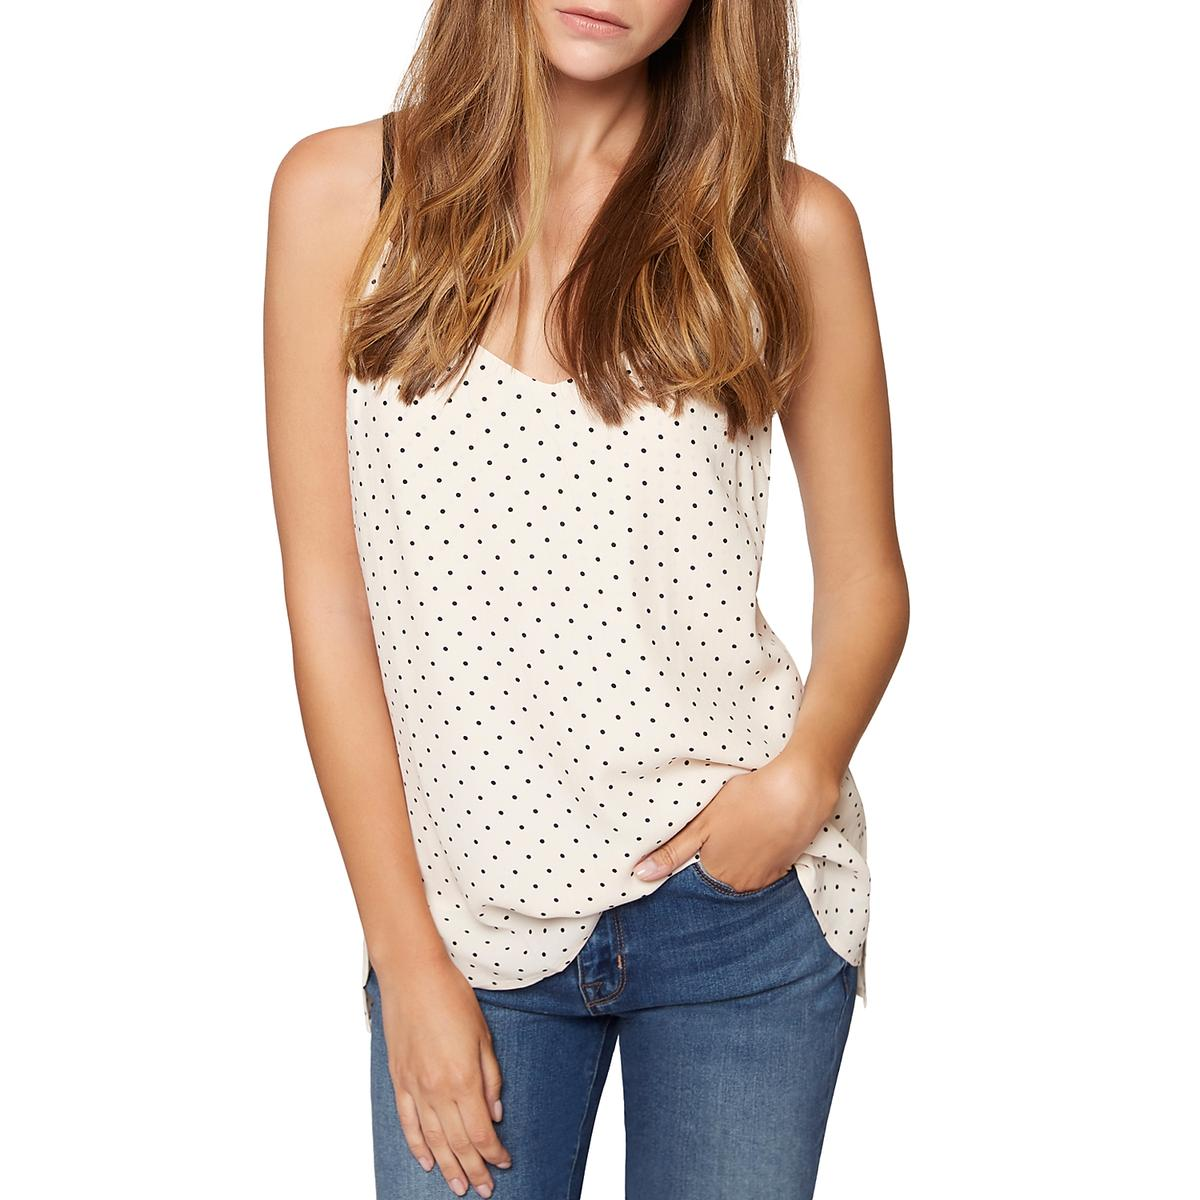 d62399dc18341 Details about Sanctuary Womens Sydney Polka Dot Tank Top Shell Cami BHFO  8499